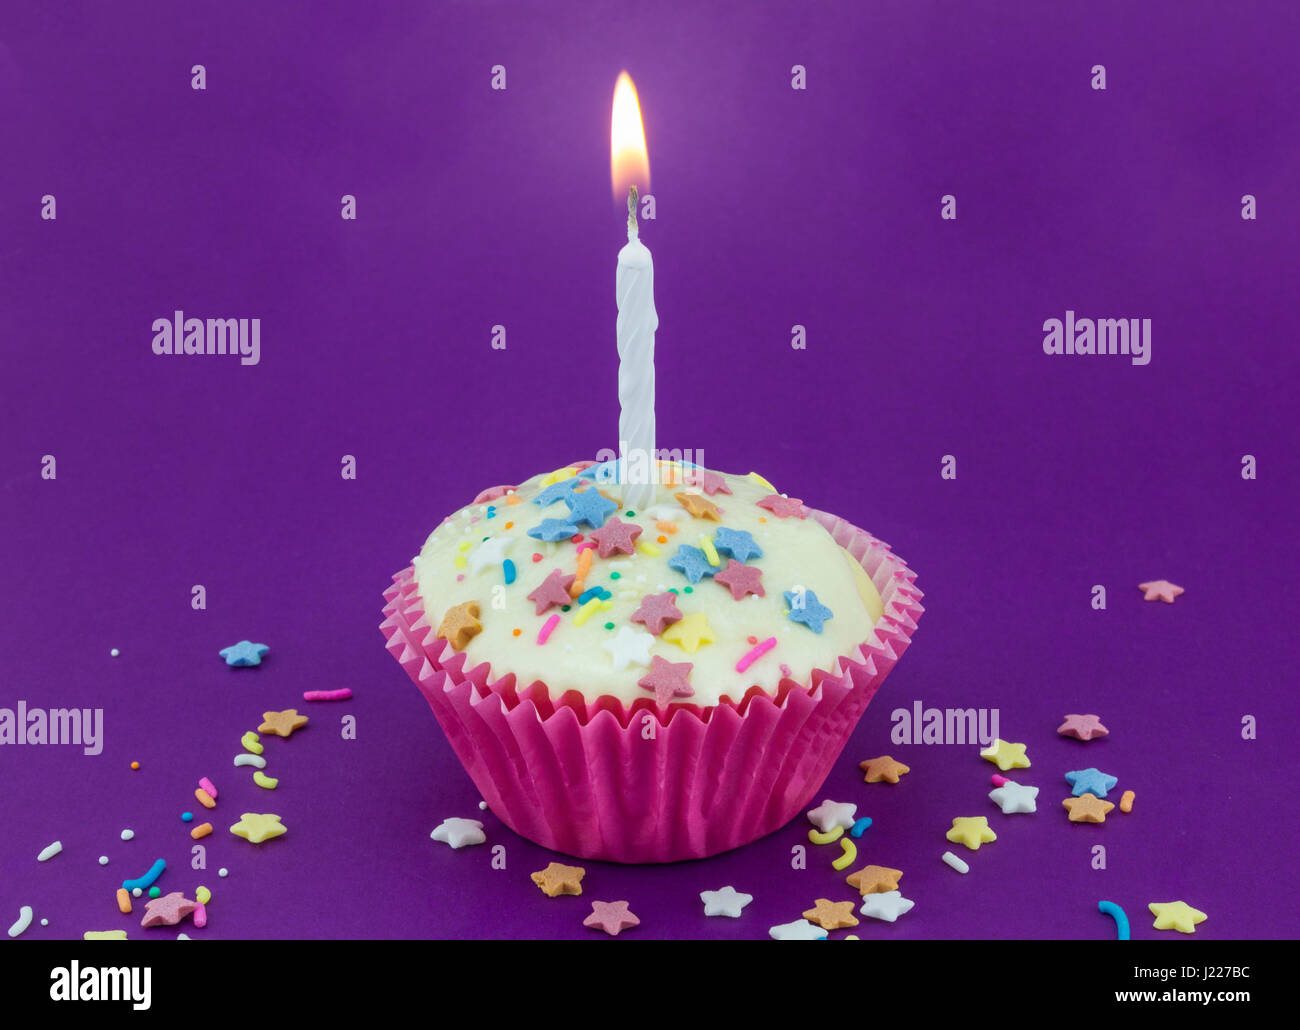 Bright purple background with single white cup cake in pink paper case and lit candle with colour star sprinkles - Stock Image